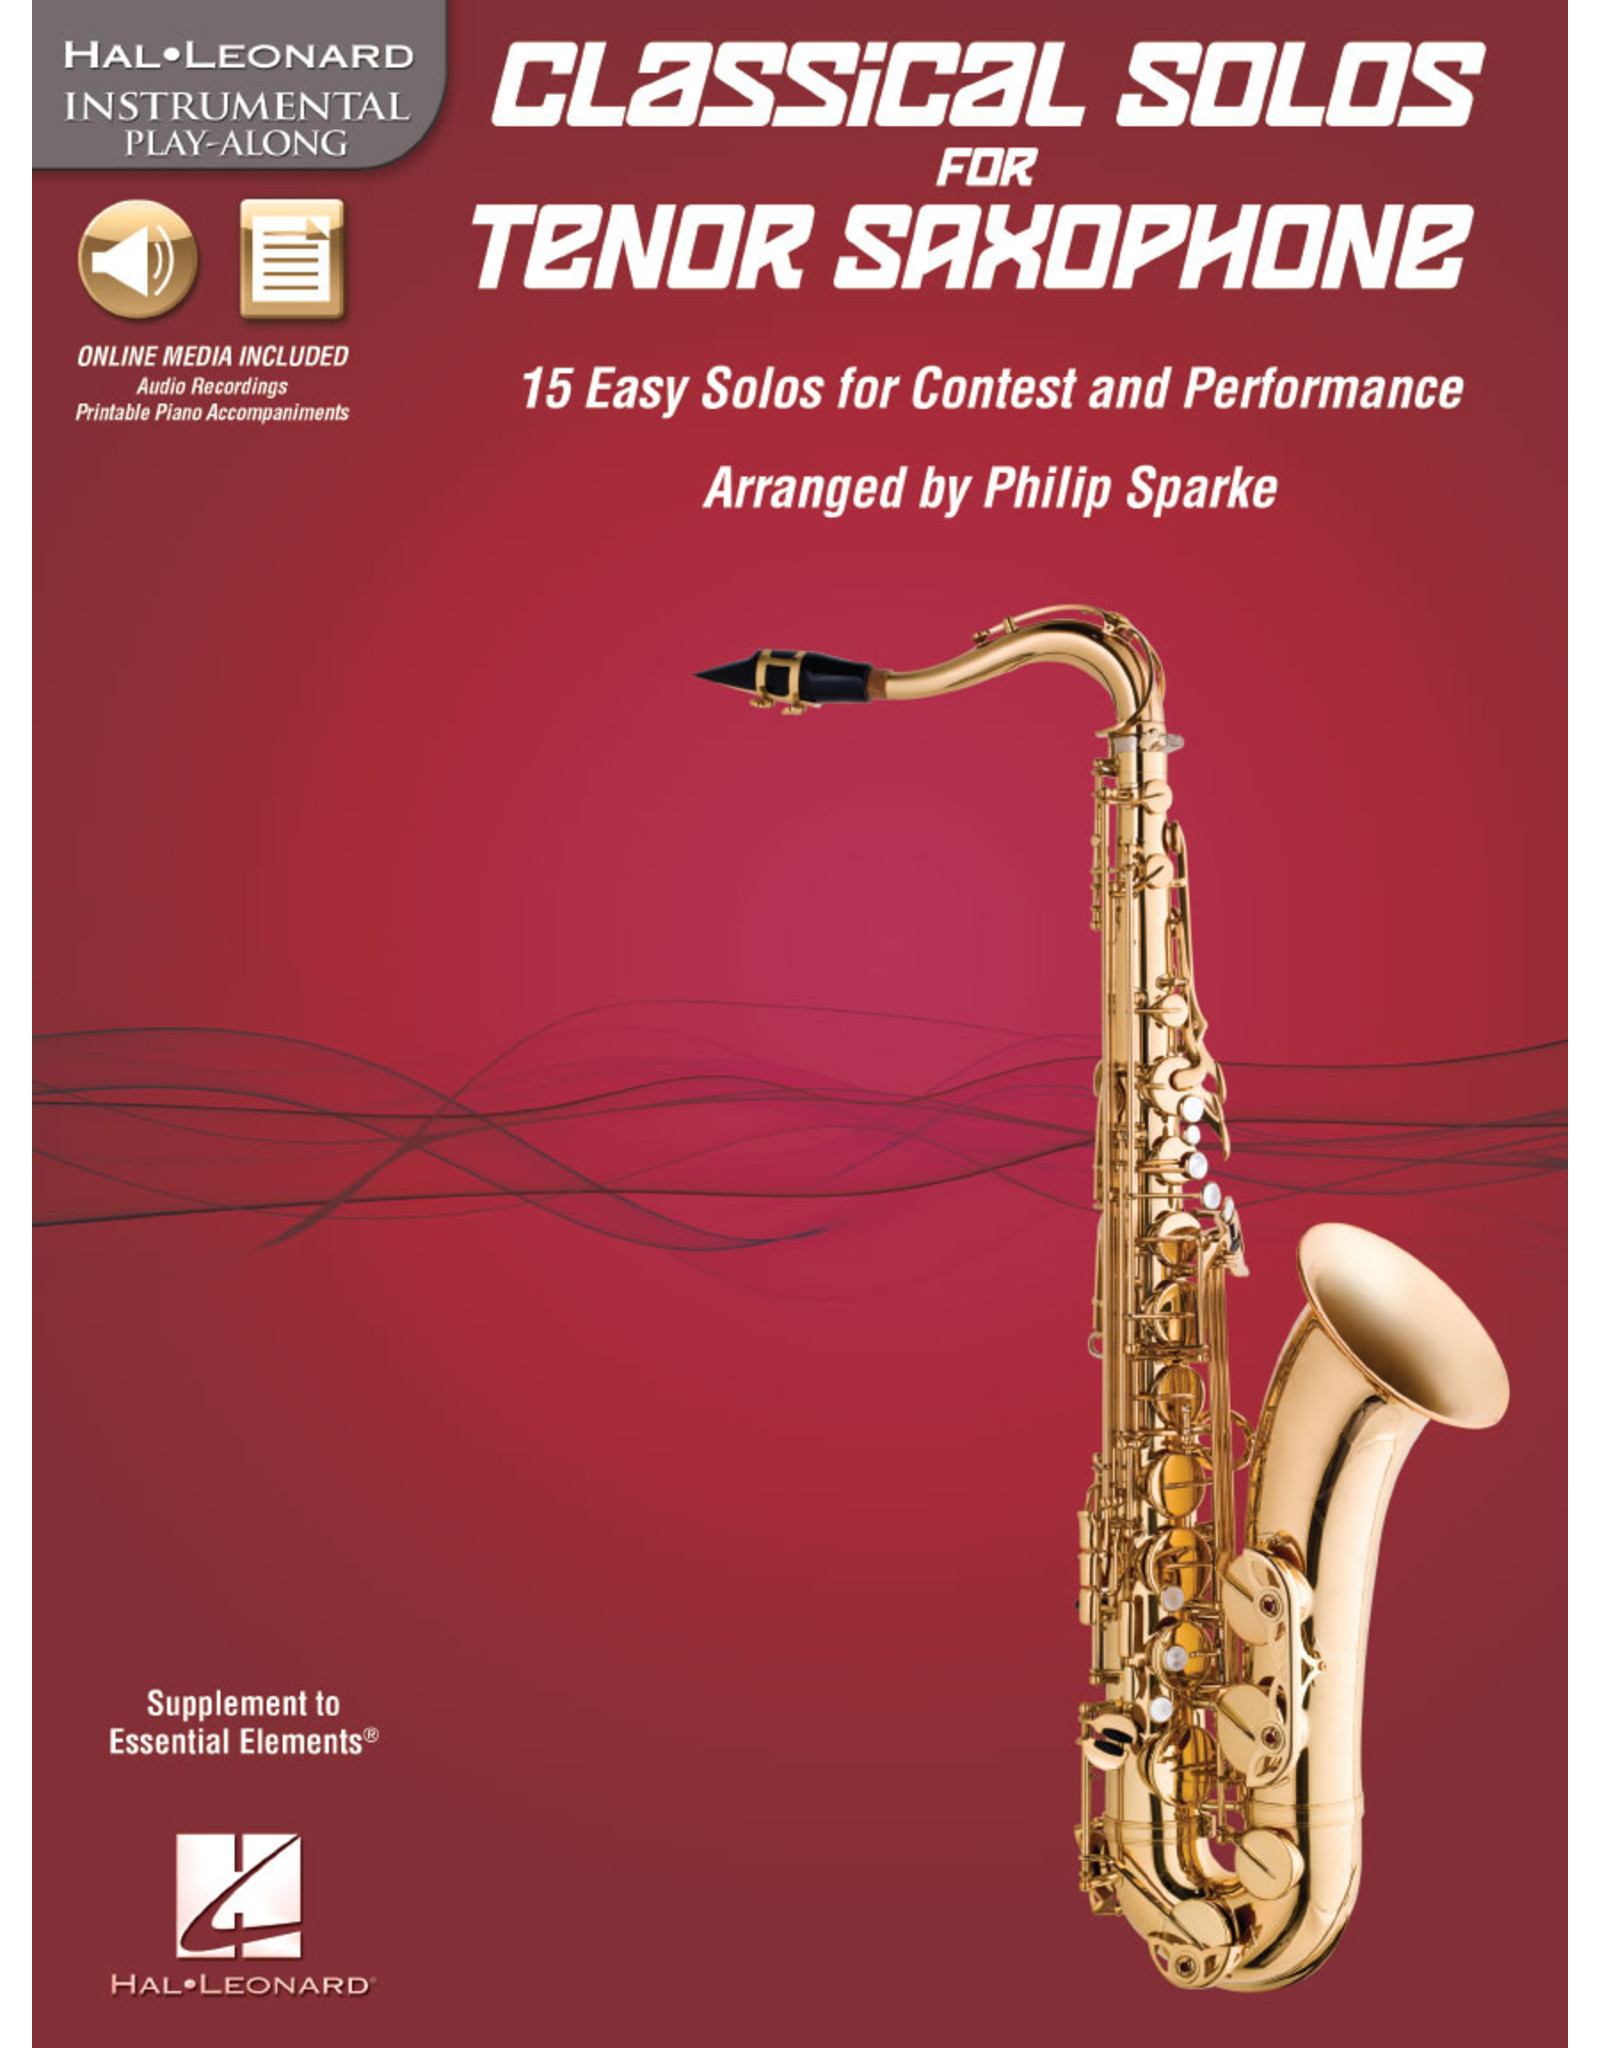 Hal Leonard Classical Solos for Tenor Saxophone 15 Easy Solos for Contest and Performance arr. Philip Sparke Instrumental Play-Along